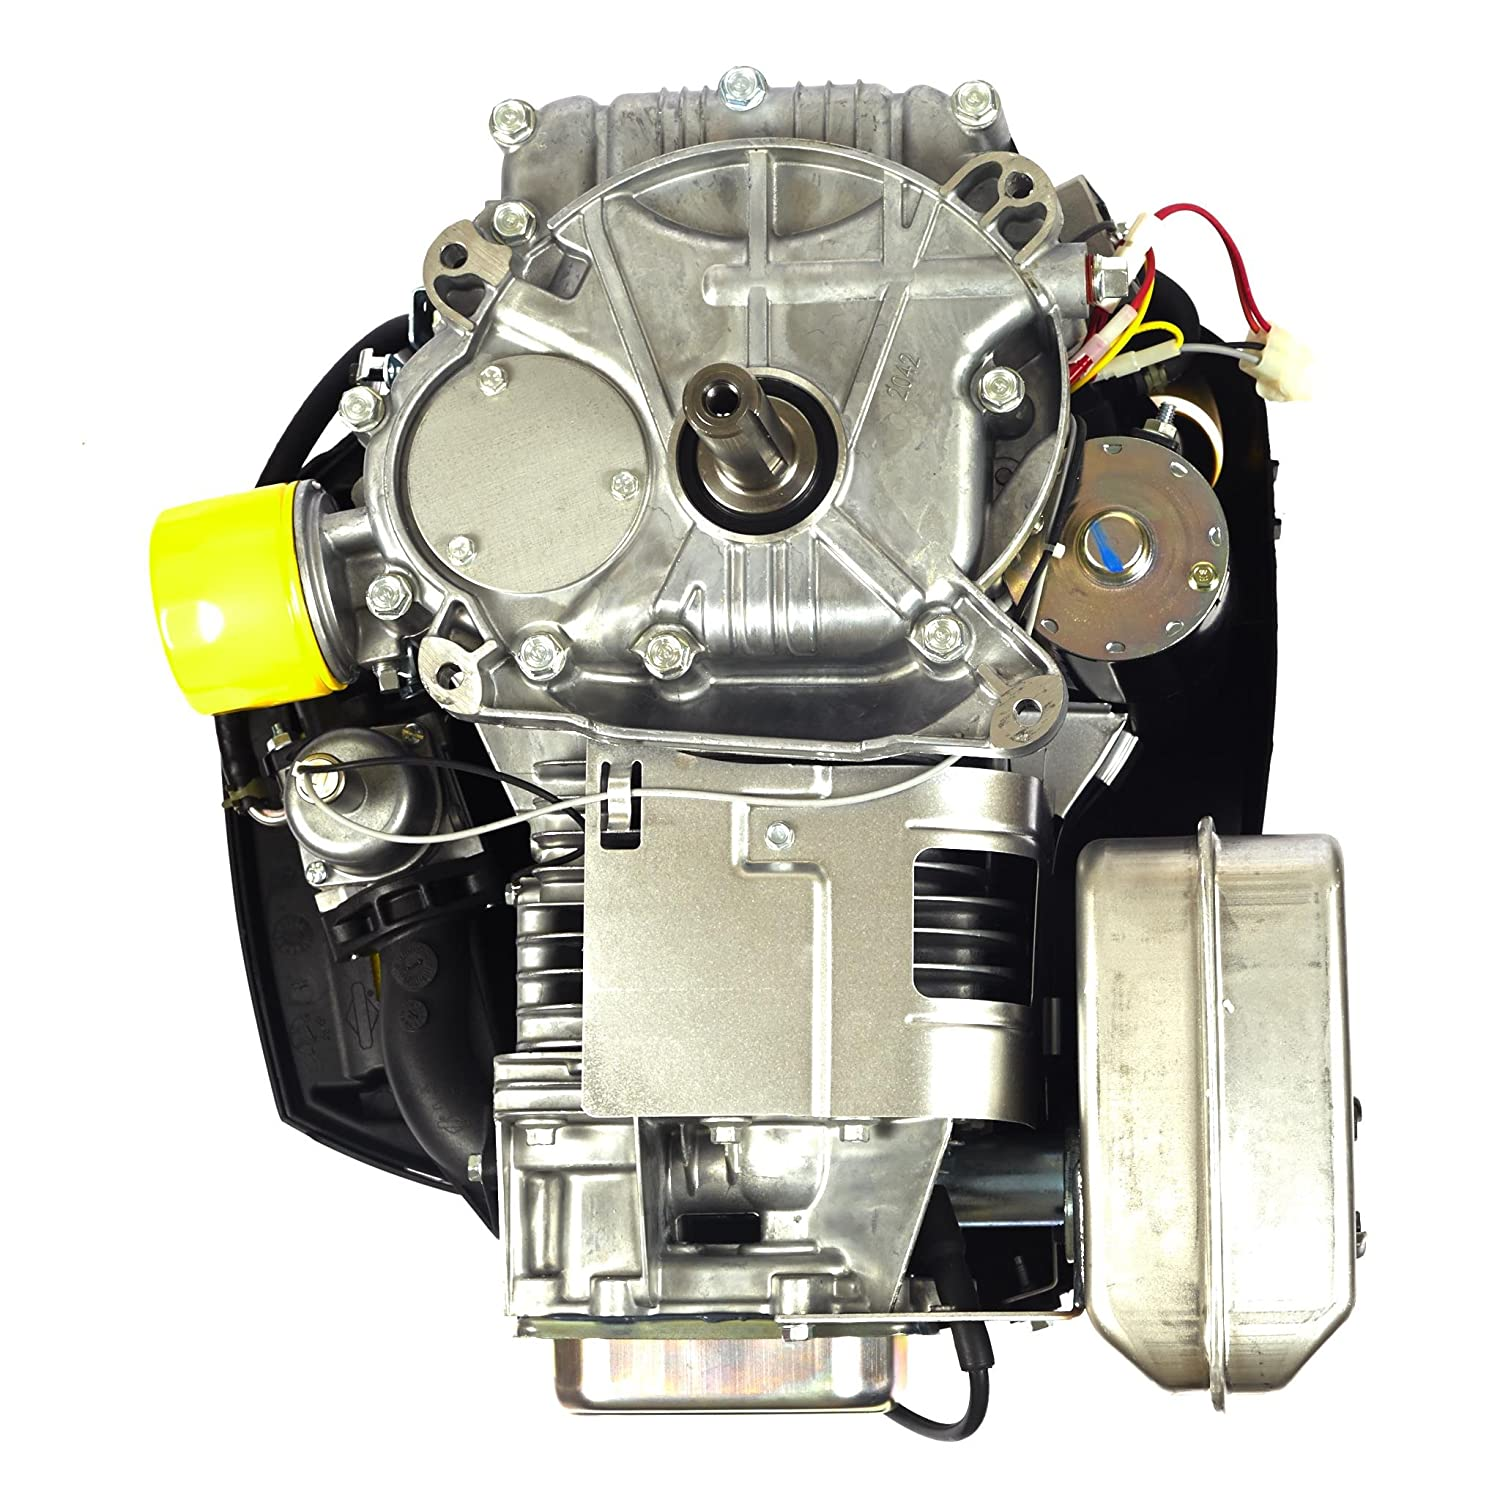 Briggs Stratton 540cc 19 Gross Hp Intek Vertical Ohv Engine With 1 Lawn Mower Carburetor Linkage Diagram Images Femalecelebrity Also Mtd D X 3 5 32 Patio Garden